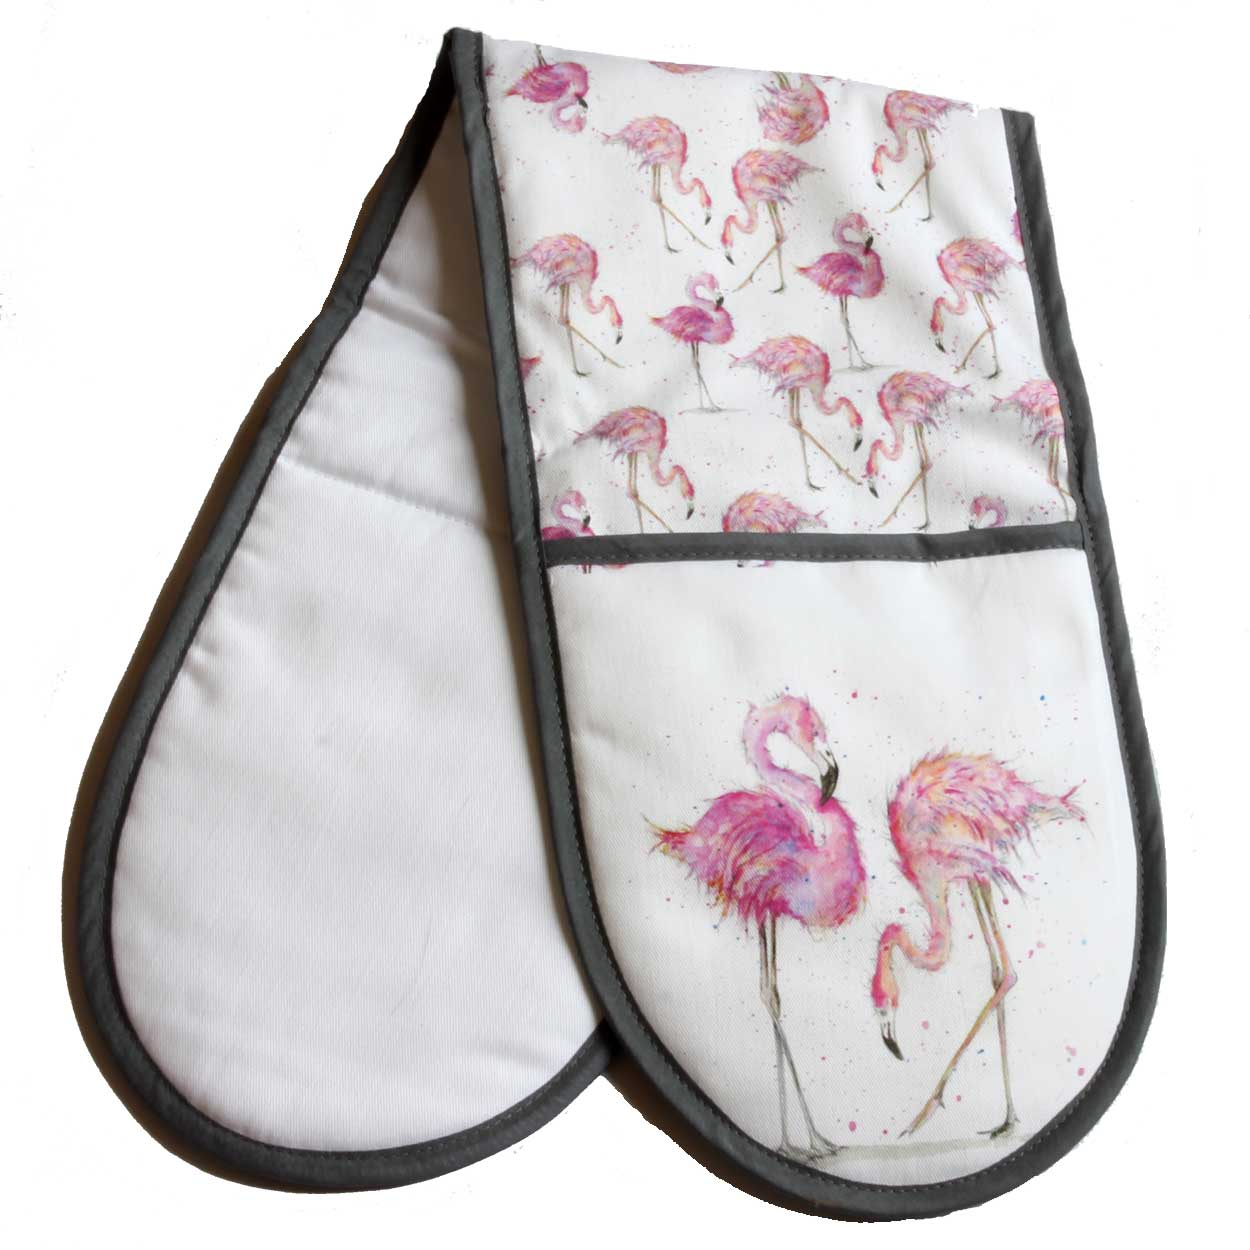 Flamingo oven gloves £18